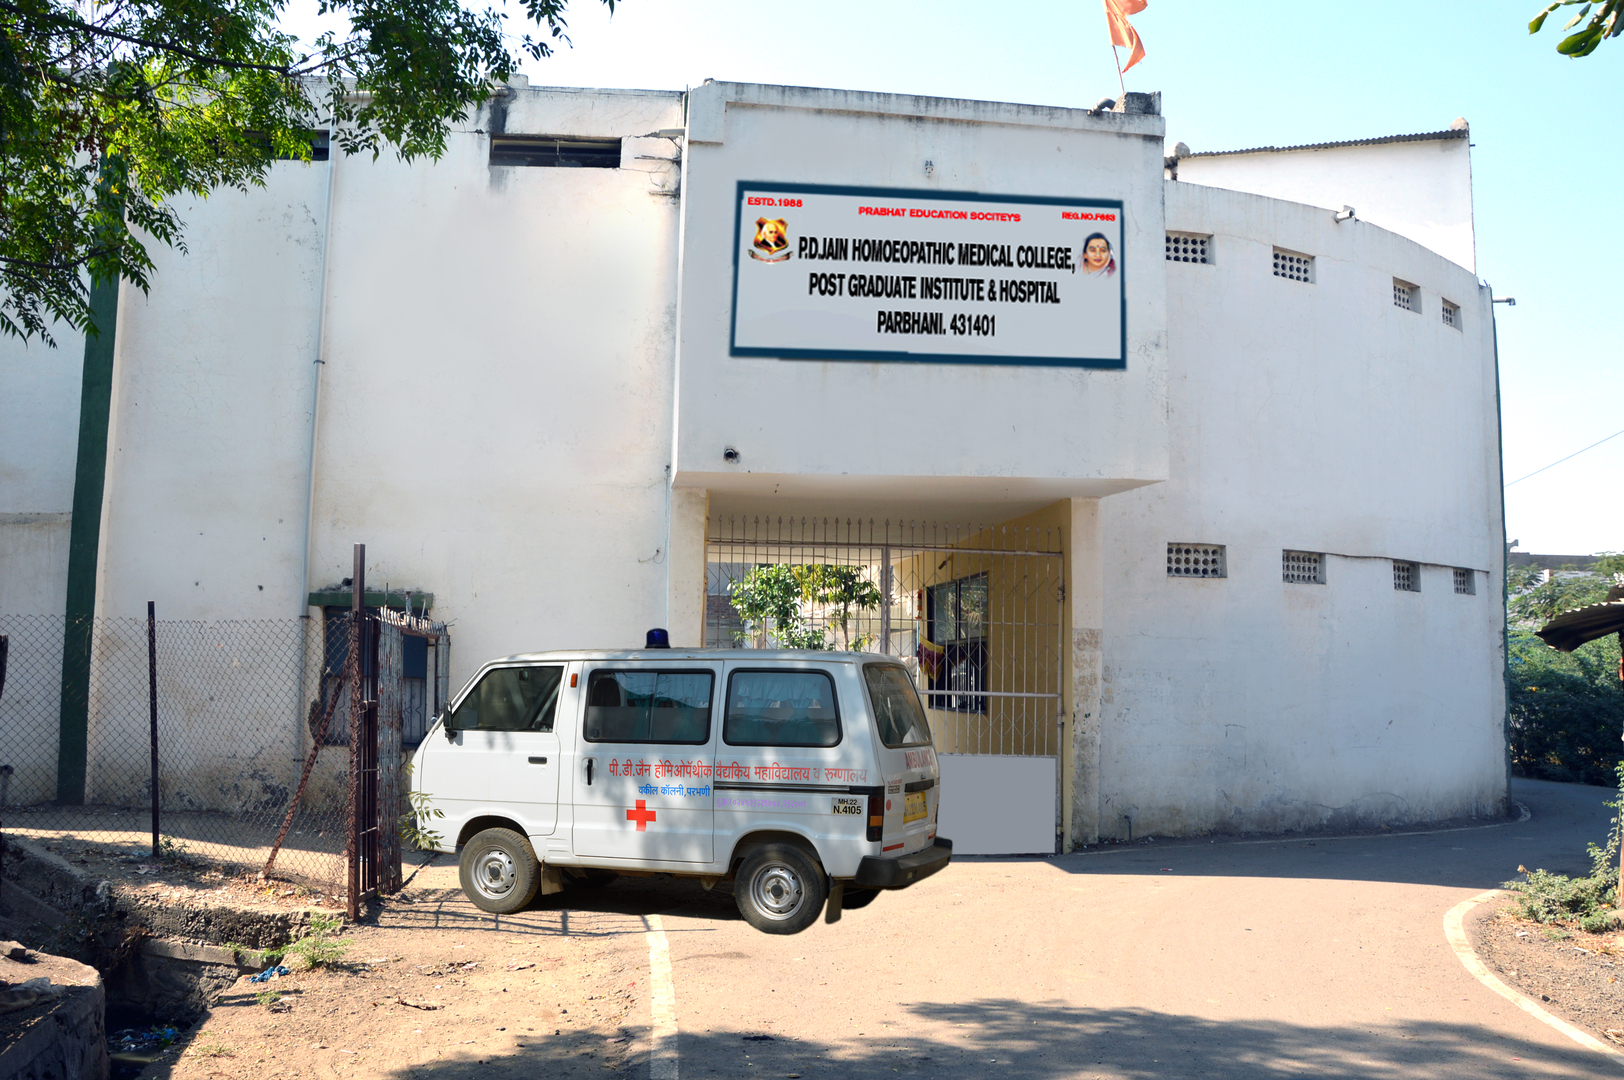 P.D.Jain Homoeopathic Medical College and Hospital Post Graduate Institute, Parbhani Image